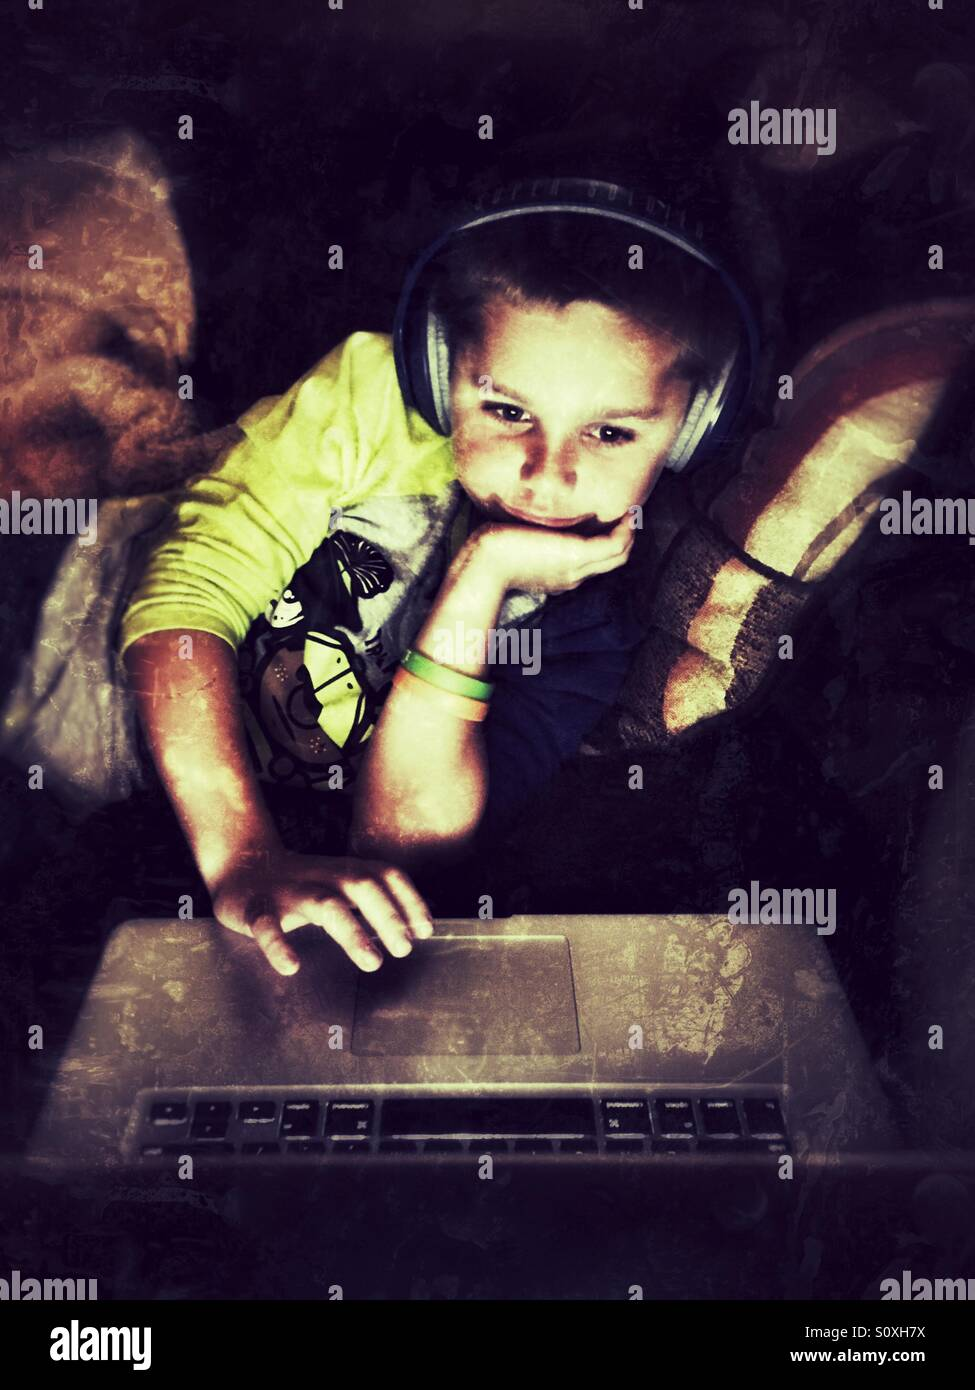 Young boy with headphones uses a laptop - Stock Image